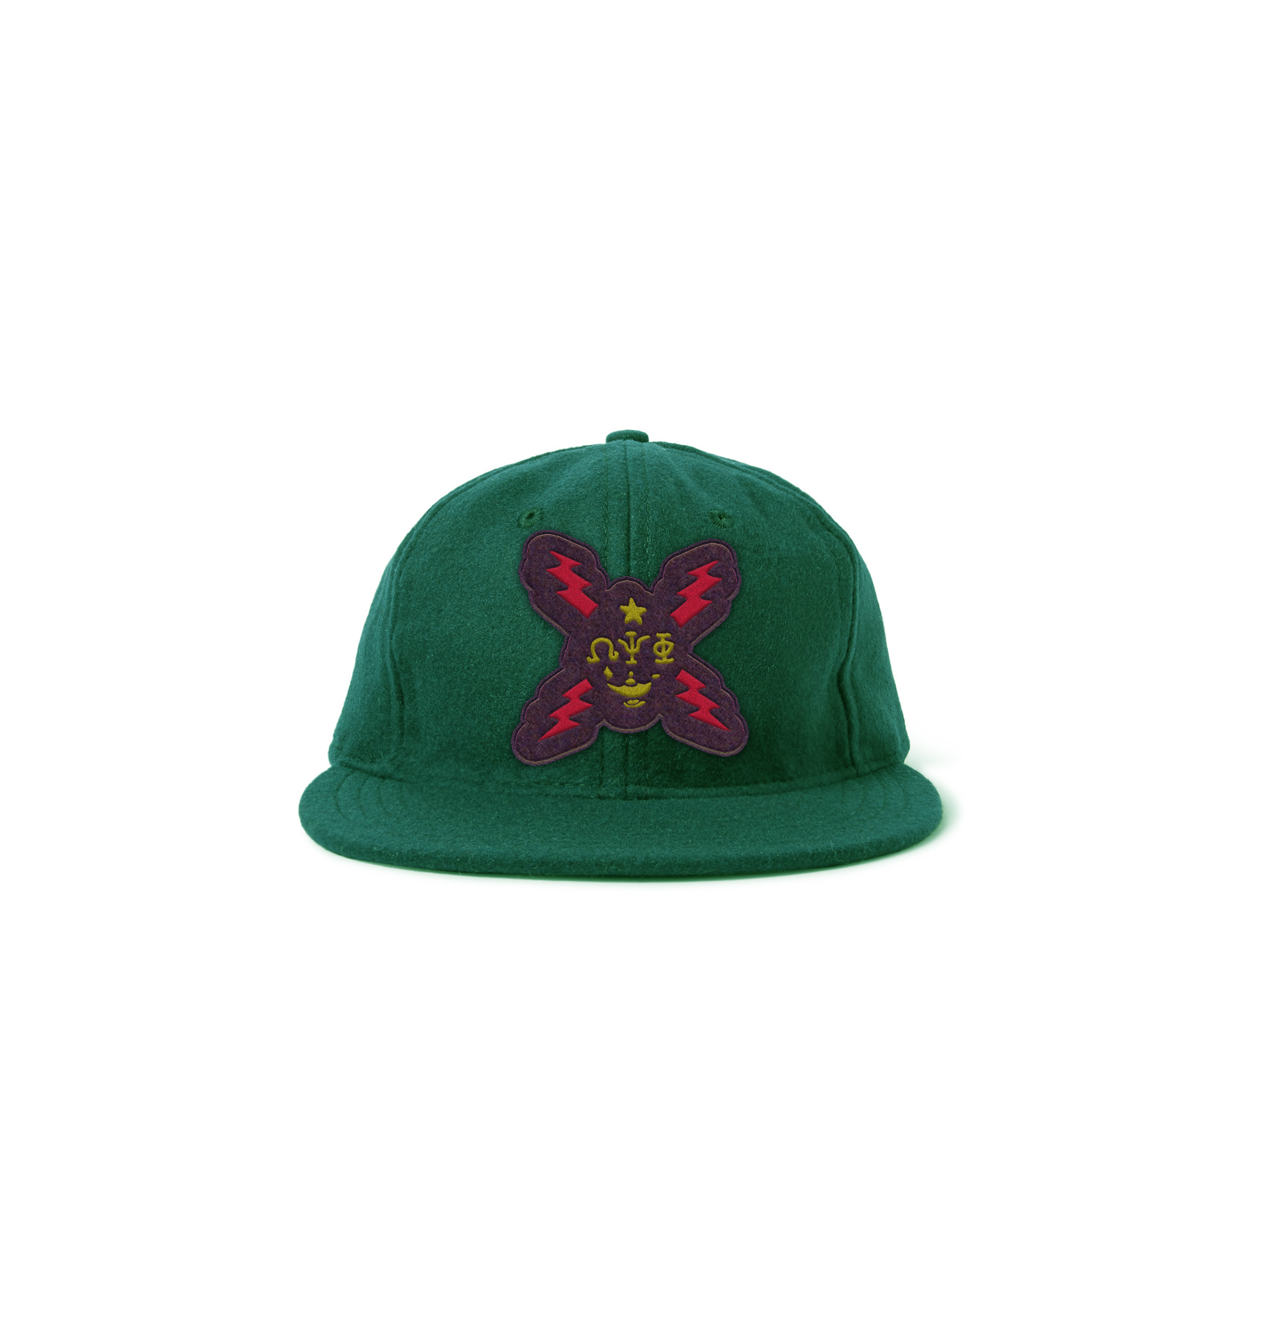 Crossed-ThunderBolt-Tshirt-KELLY-GREEN-Wool-Cap-with-Leather-Strap.png